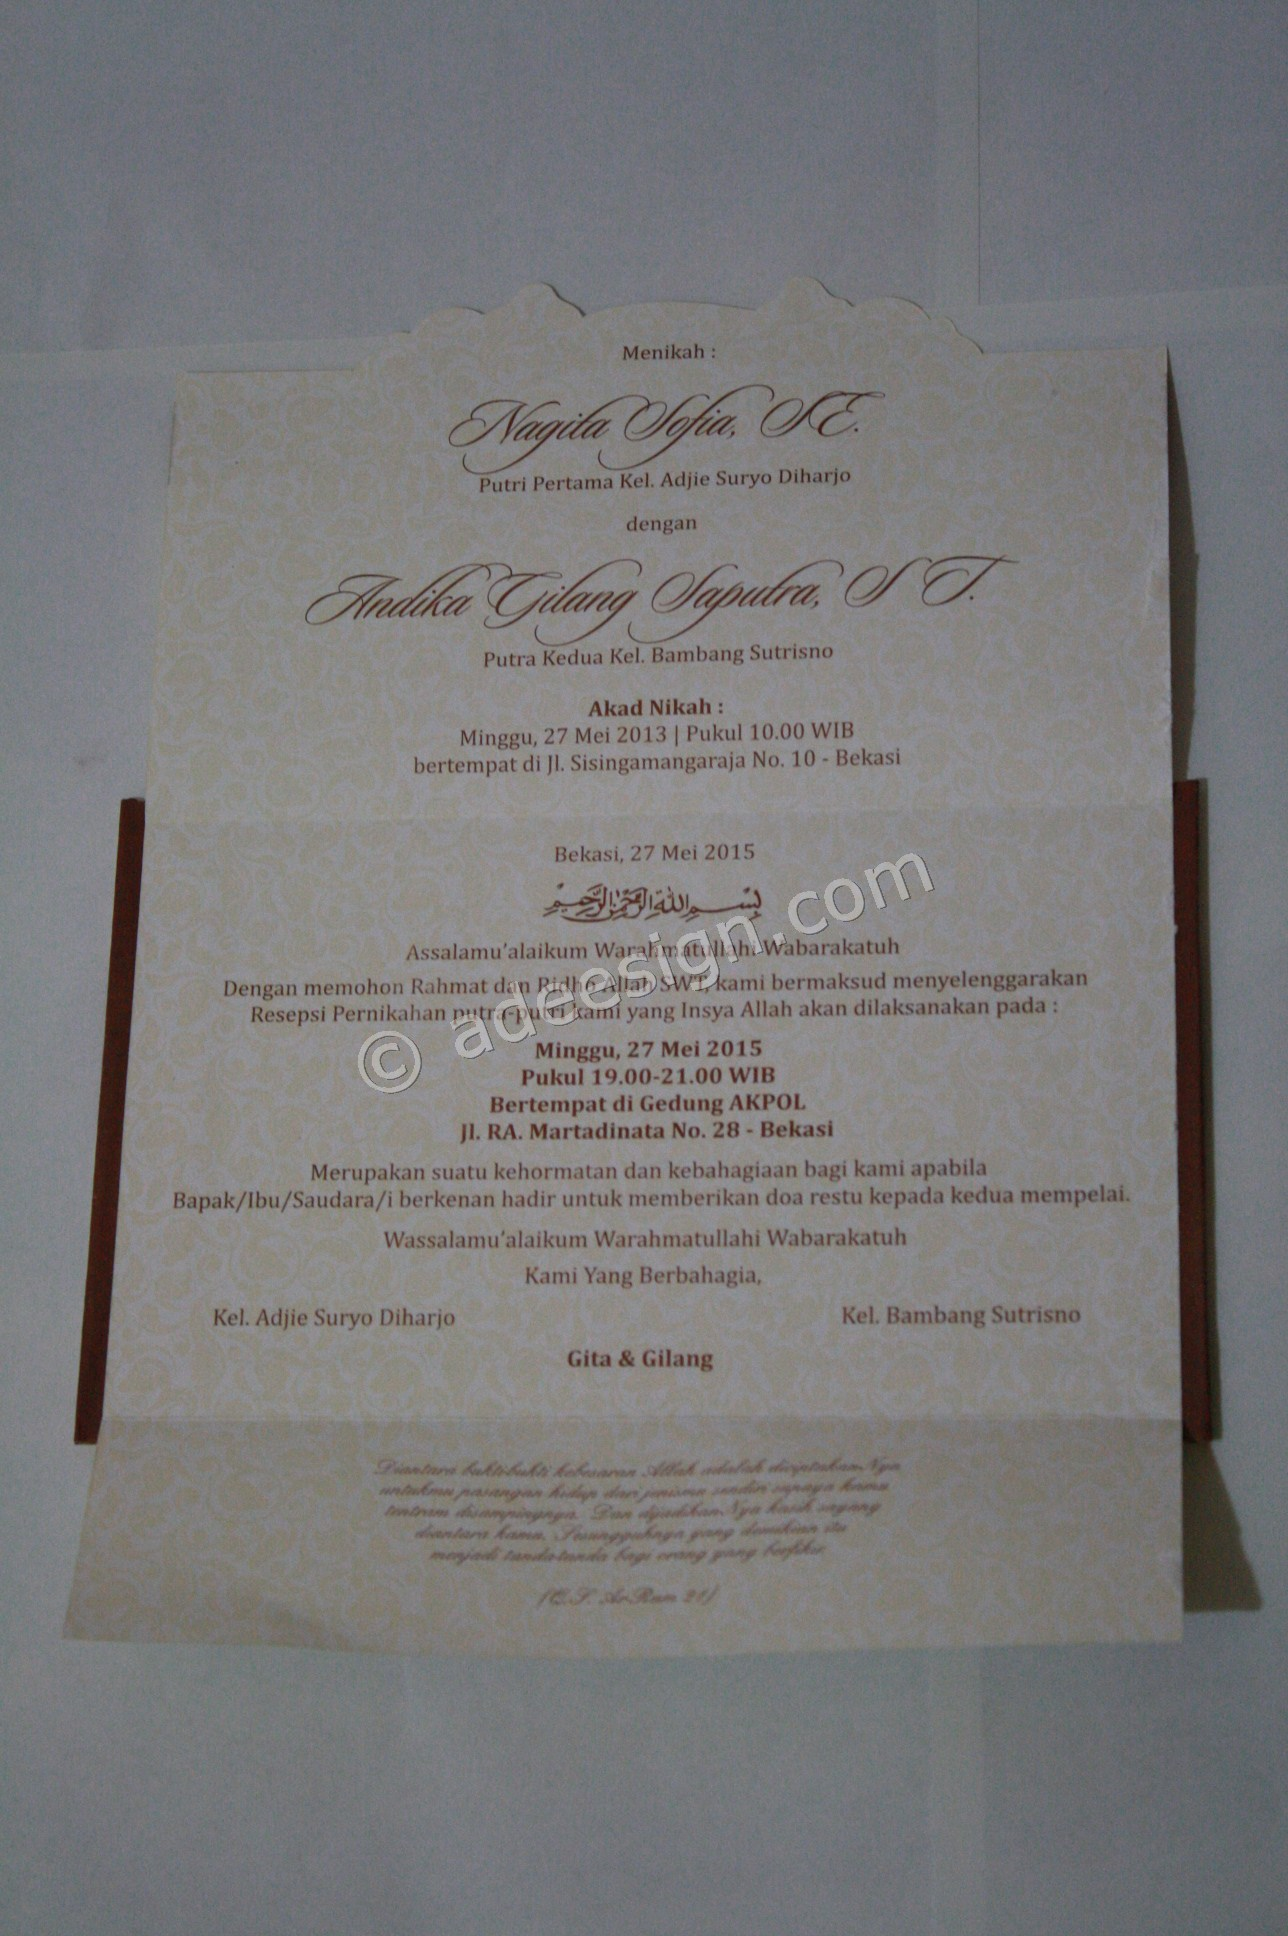 Undangan Pernikahan Semi Hard Cover Gita dan Gilang 2 - Membuat Wedding Invitations Unik dan Simple di Sawahan